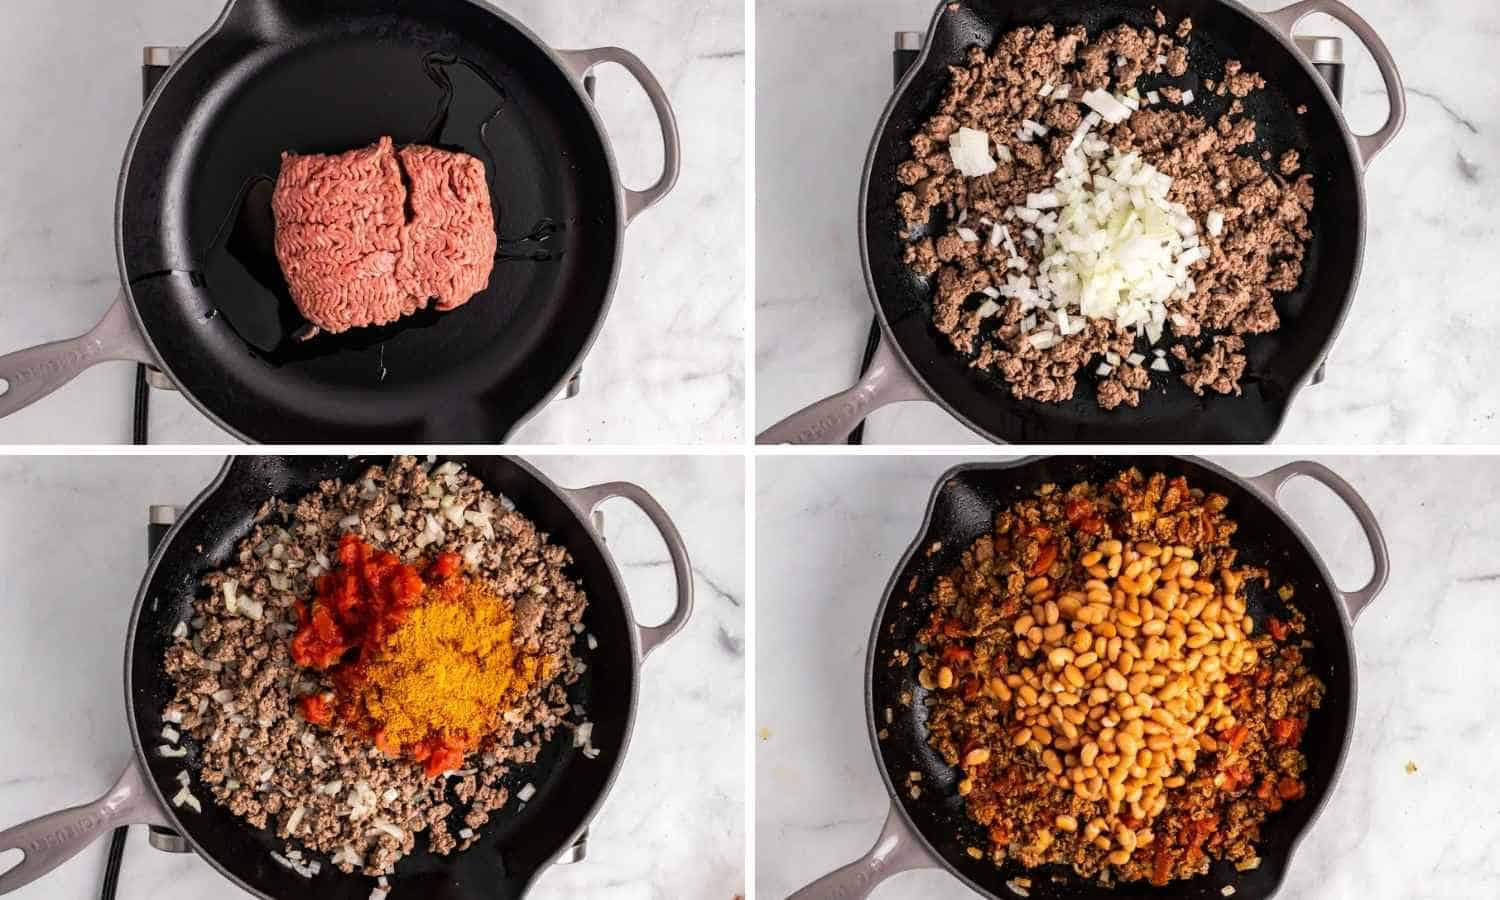 Collage of four images showing how to cook the beef with the spices and aromatics to make the taco beef mixture with pinto beans.